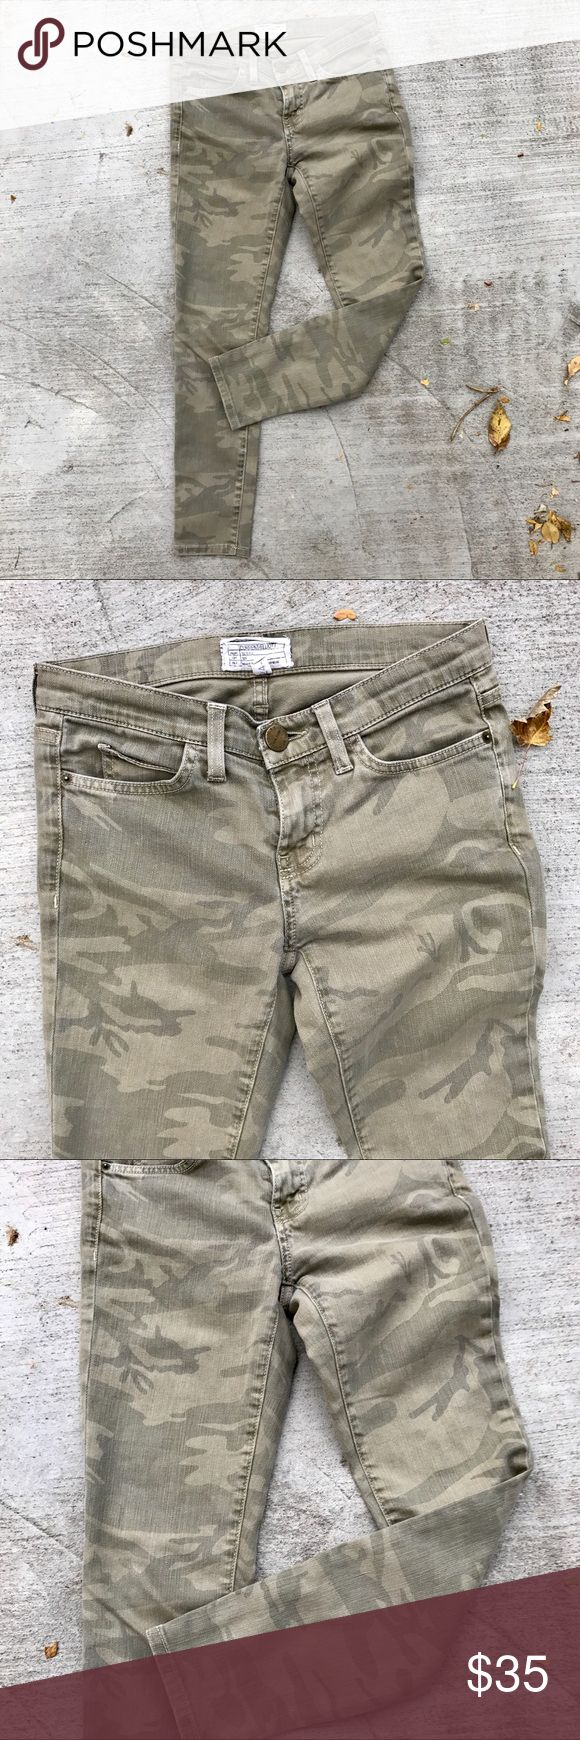 Current / Elliott Camouflage Skinny Jeans Good condition! No rips, stains or tears. Actual measurements:  Waist: 27 inches Inseam: 24 inches Length: 34 inches Current/Elliott Jeans Skinny